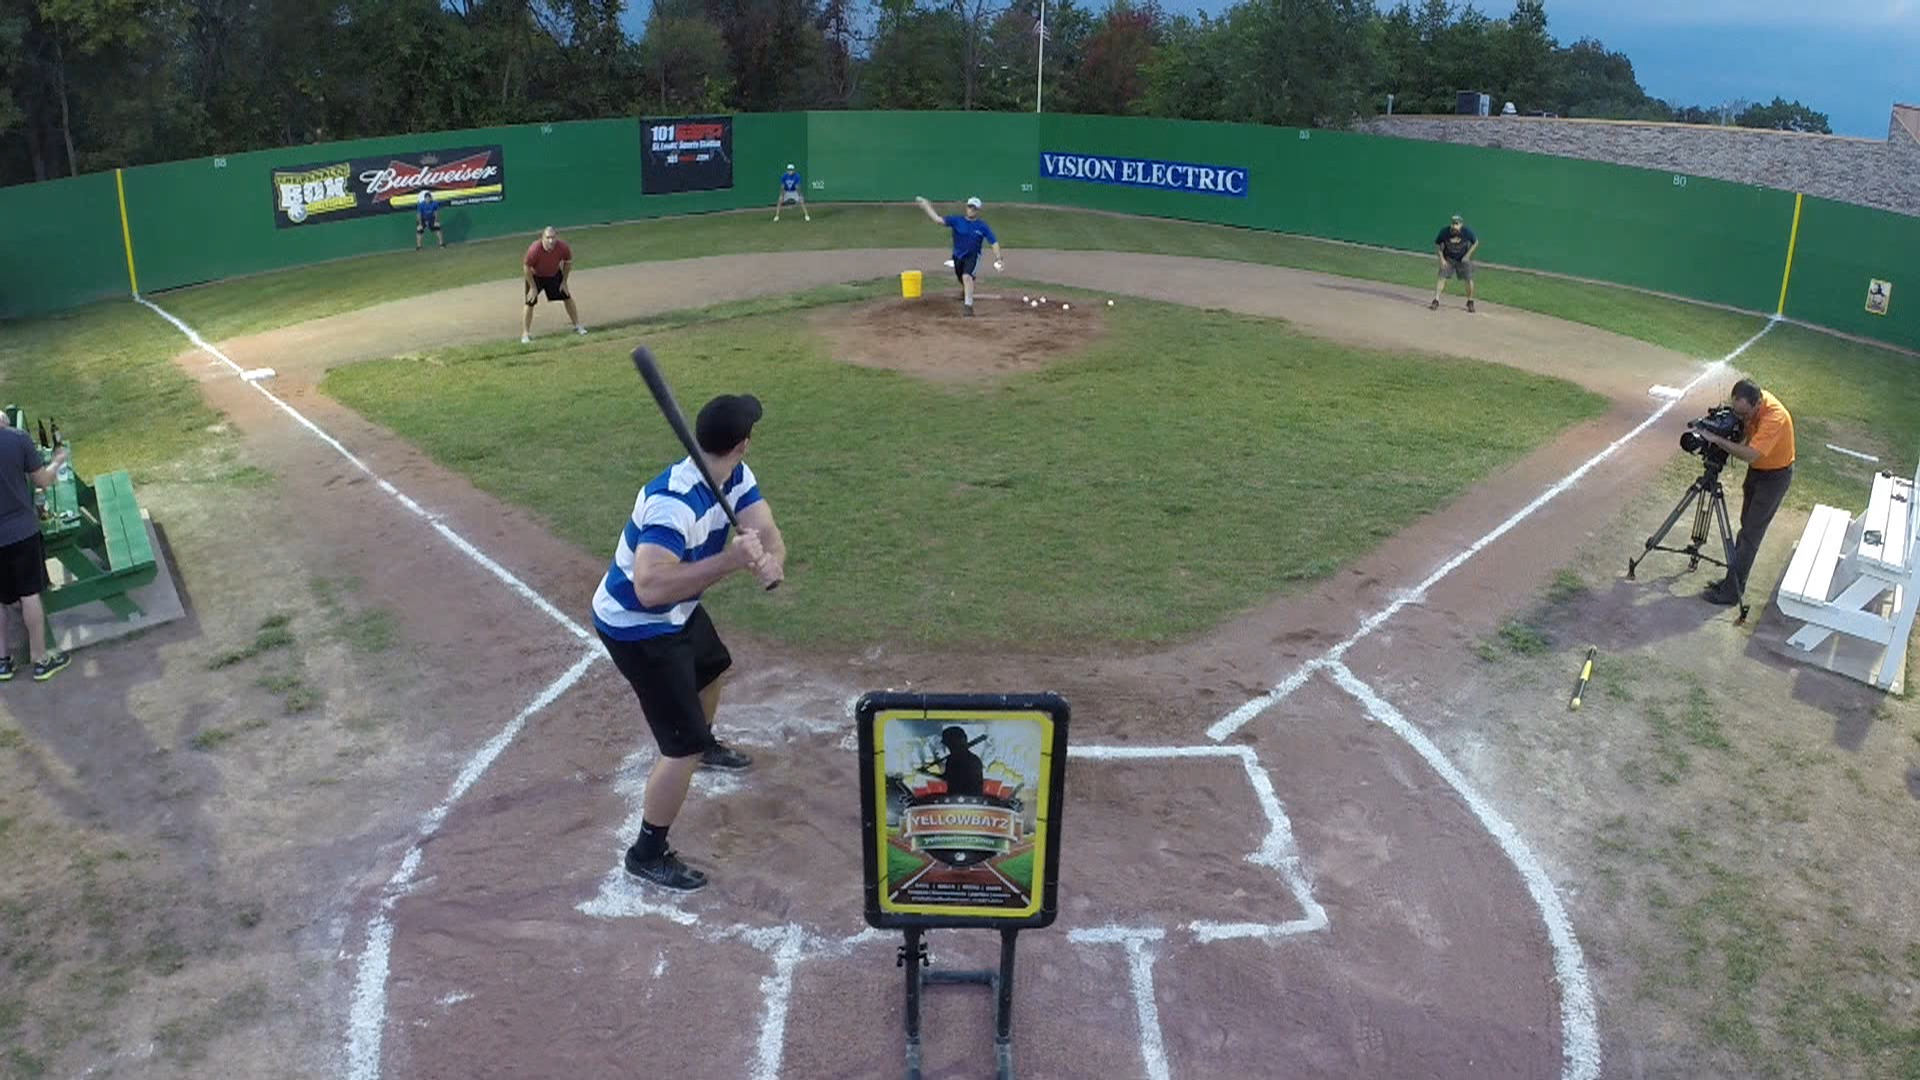 an analysis of american dream in the old ball game It is a dream deeply rooted in the american dream  the true meaning of its  creed: we hold these truths to be self-evident,  you have seen, and probably  have participated in, cracking shelled peanuts at the old ball game.